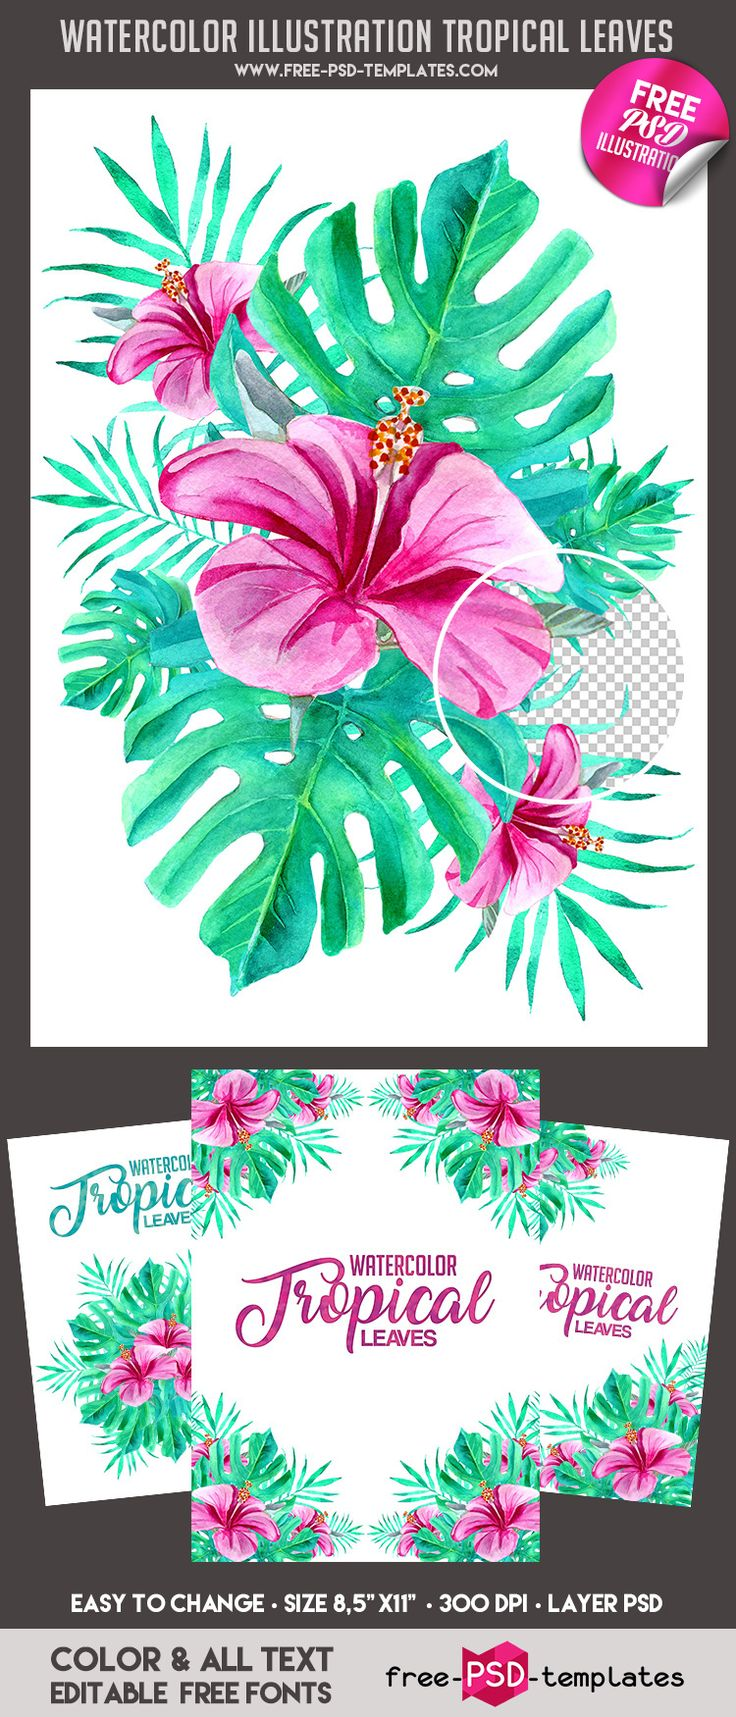 FREE WATERCOLOR TROPICAL LEAVES IN PSD on Behance